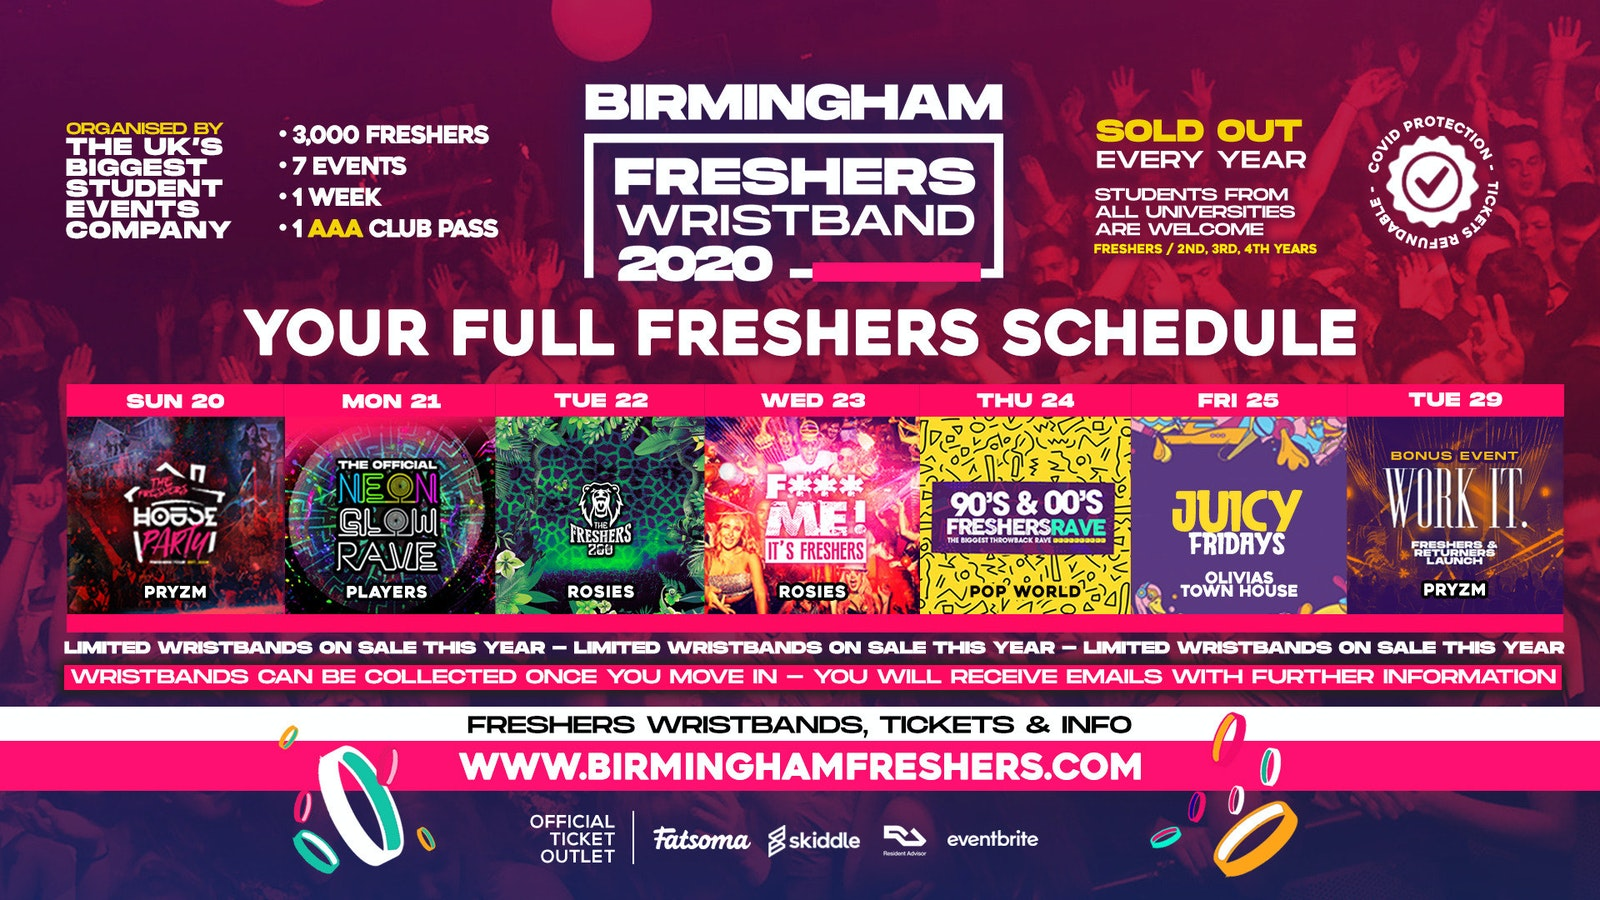 Birmingham Freshers Week Wristband 2020 | Pre-Sale Registration – Includes the BIGGEST events at PRYZM, ROSIES & much more!